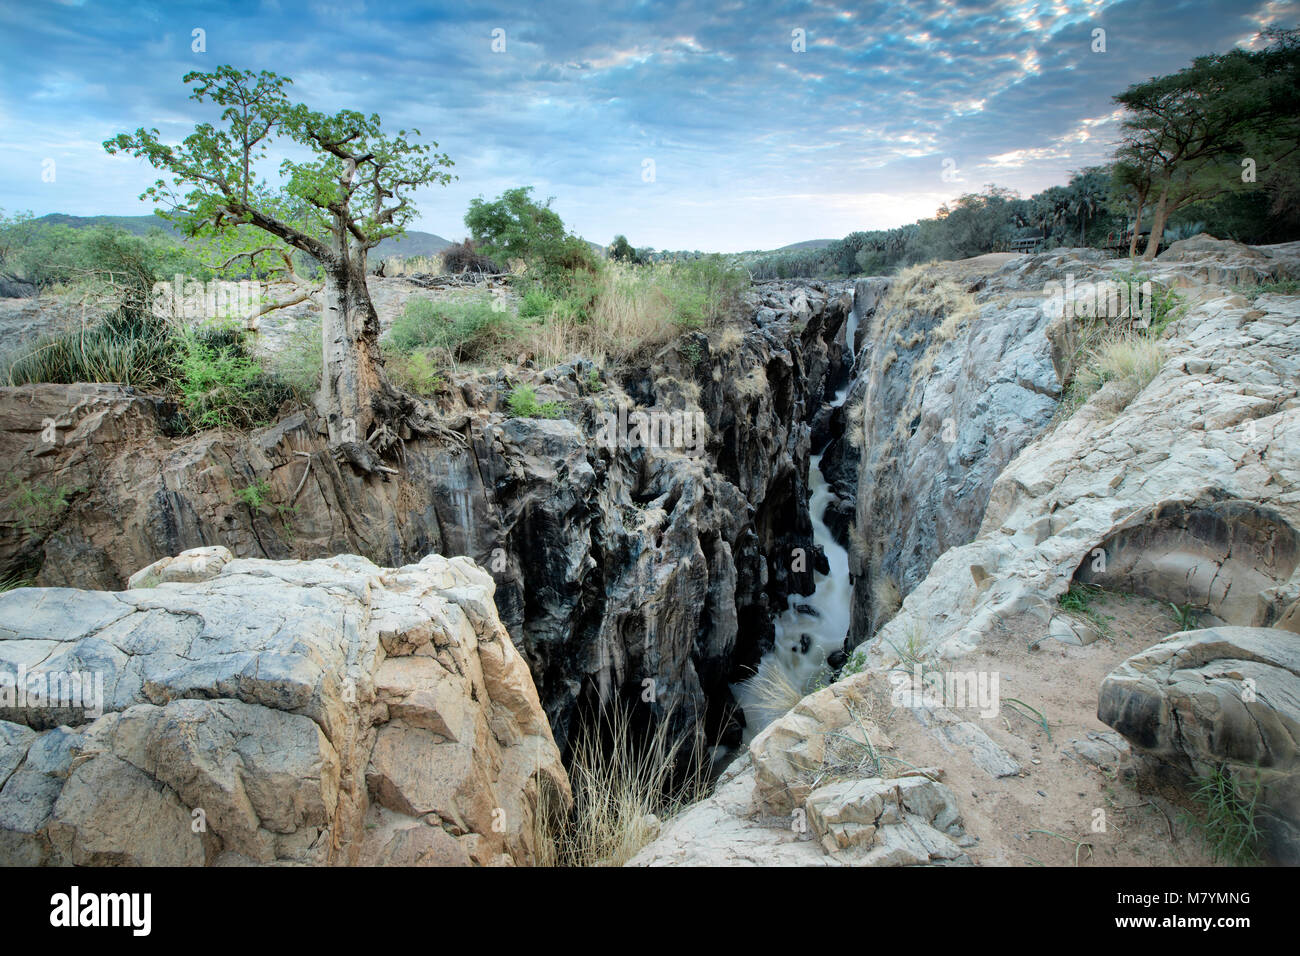 Baobab tree on edge of Epupa Falls - Stock Image